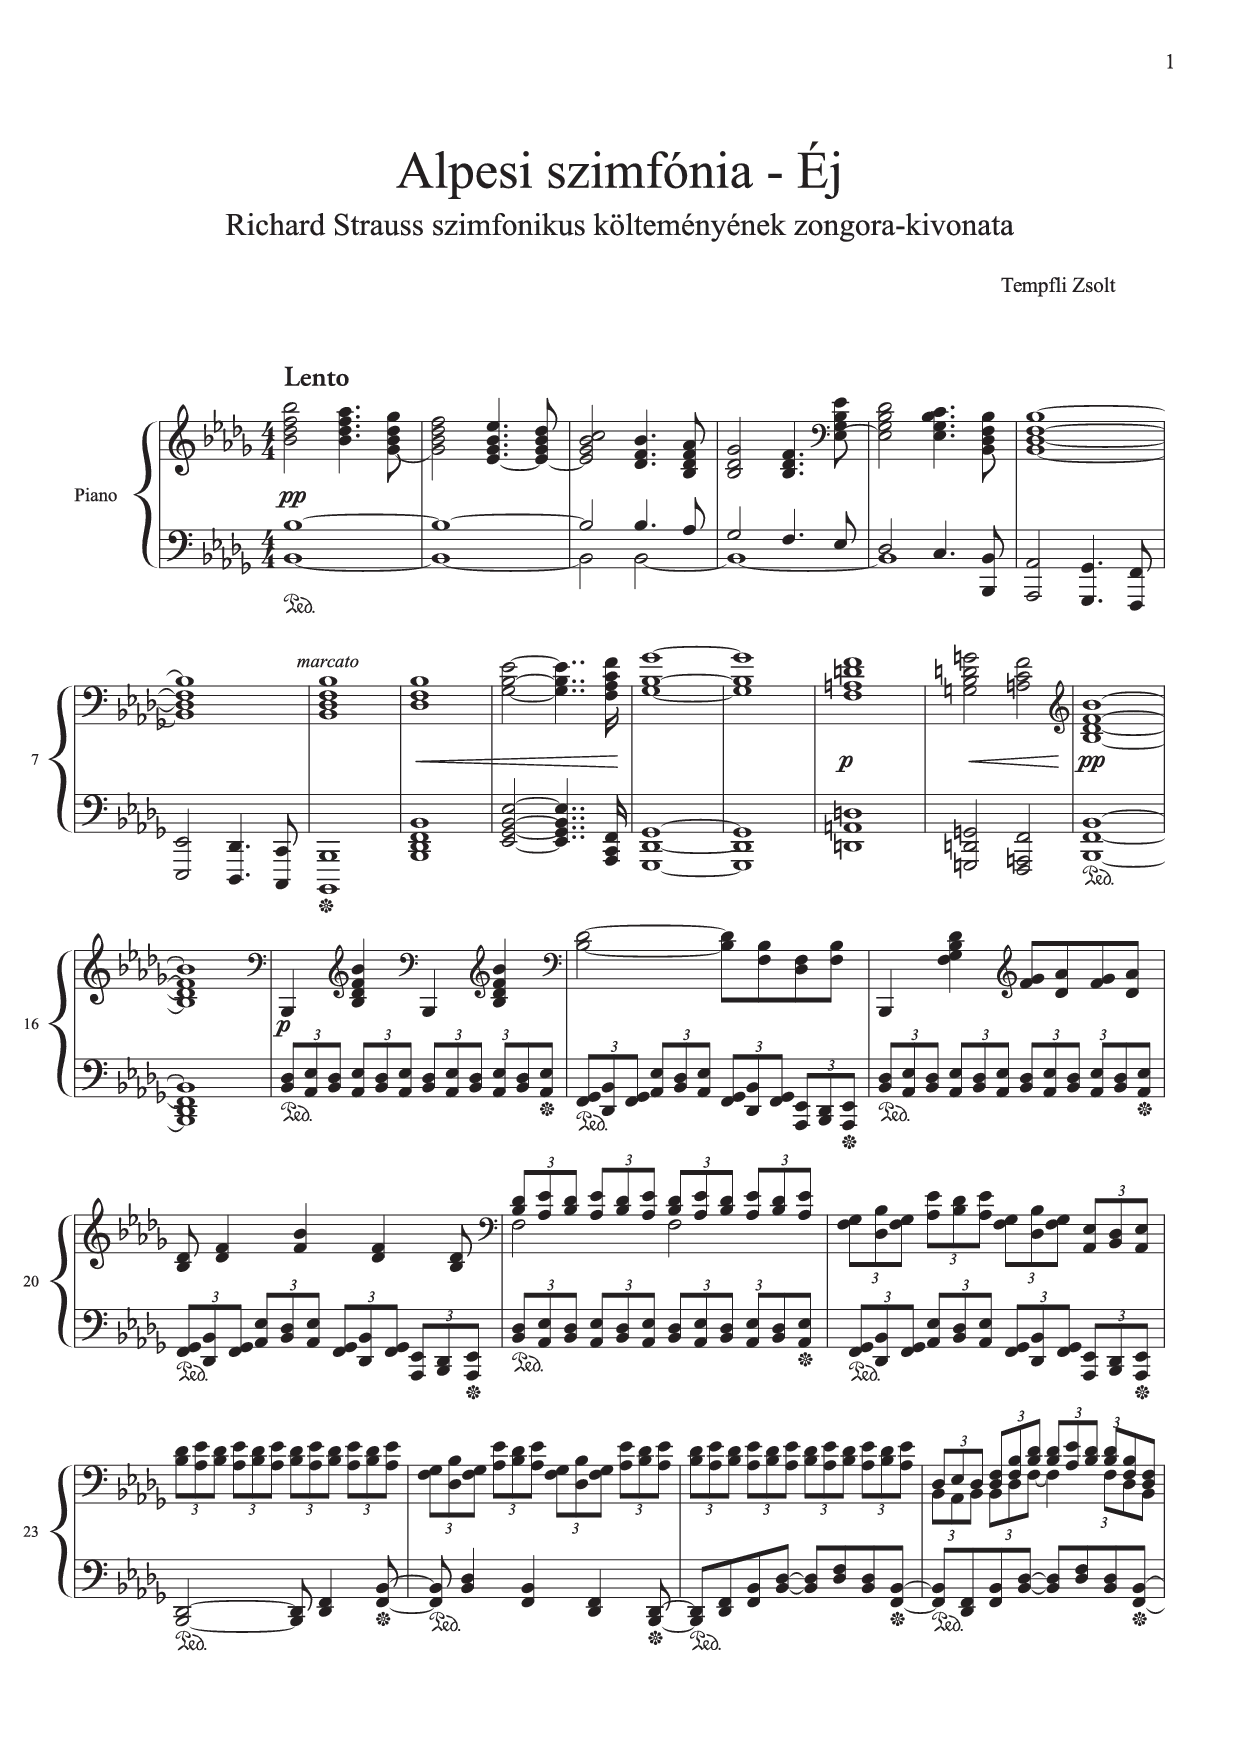 Richard Strauss An Alpine Symphony Night piano transcription